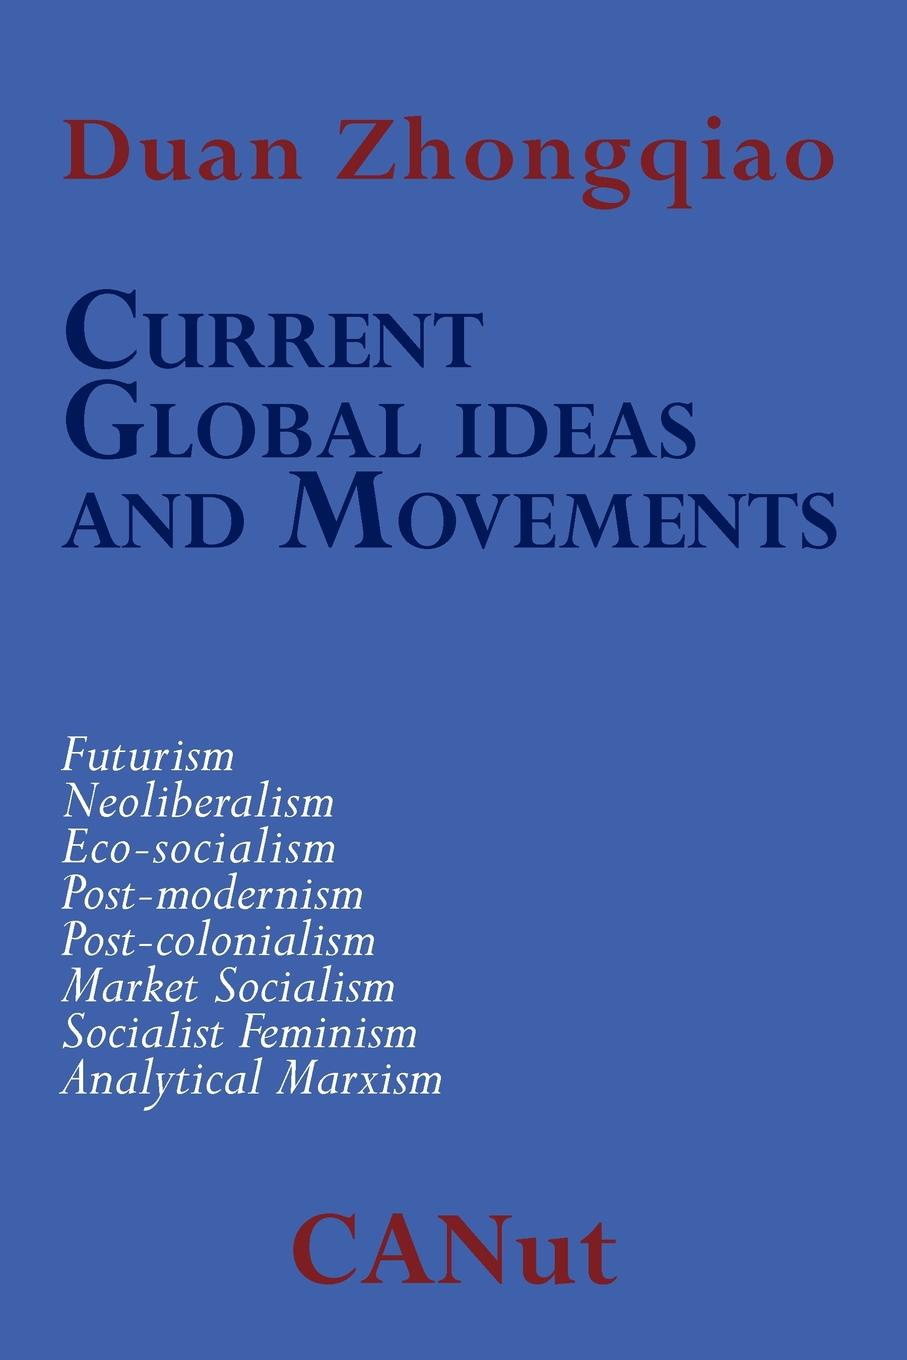 Duan Zhongqiao Current Global Ideas and Movements Challenging Capitalism. Futurism, Neo-Liberalism, Post-modernism, Post- Colonialism, Analytical Marxism, Eco-socialism, Socialist Feminism, Market Socialism beijing